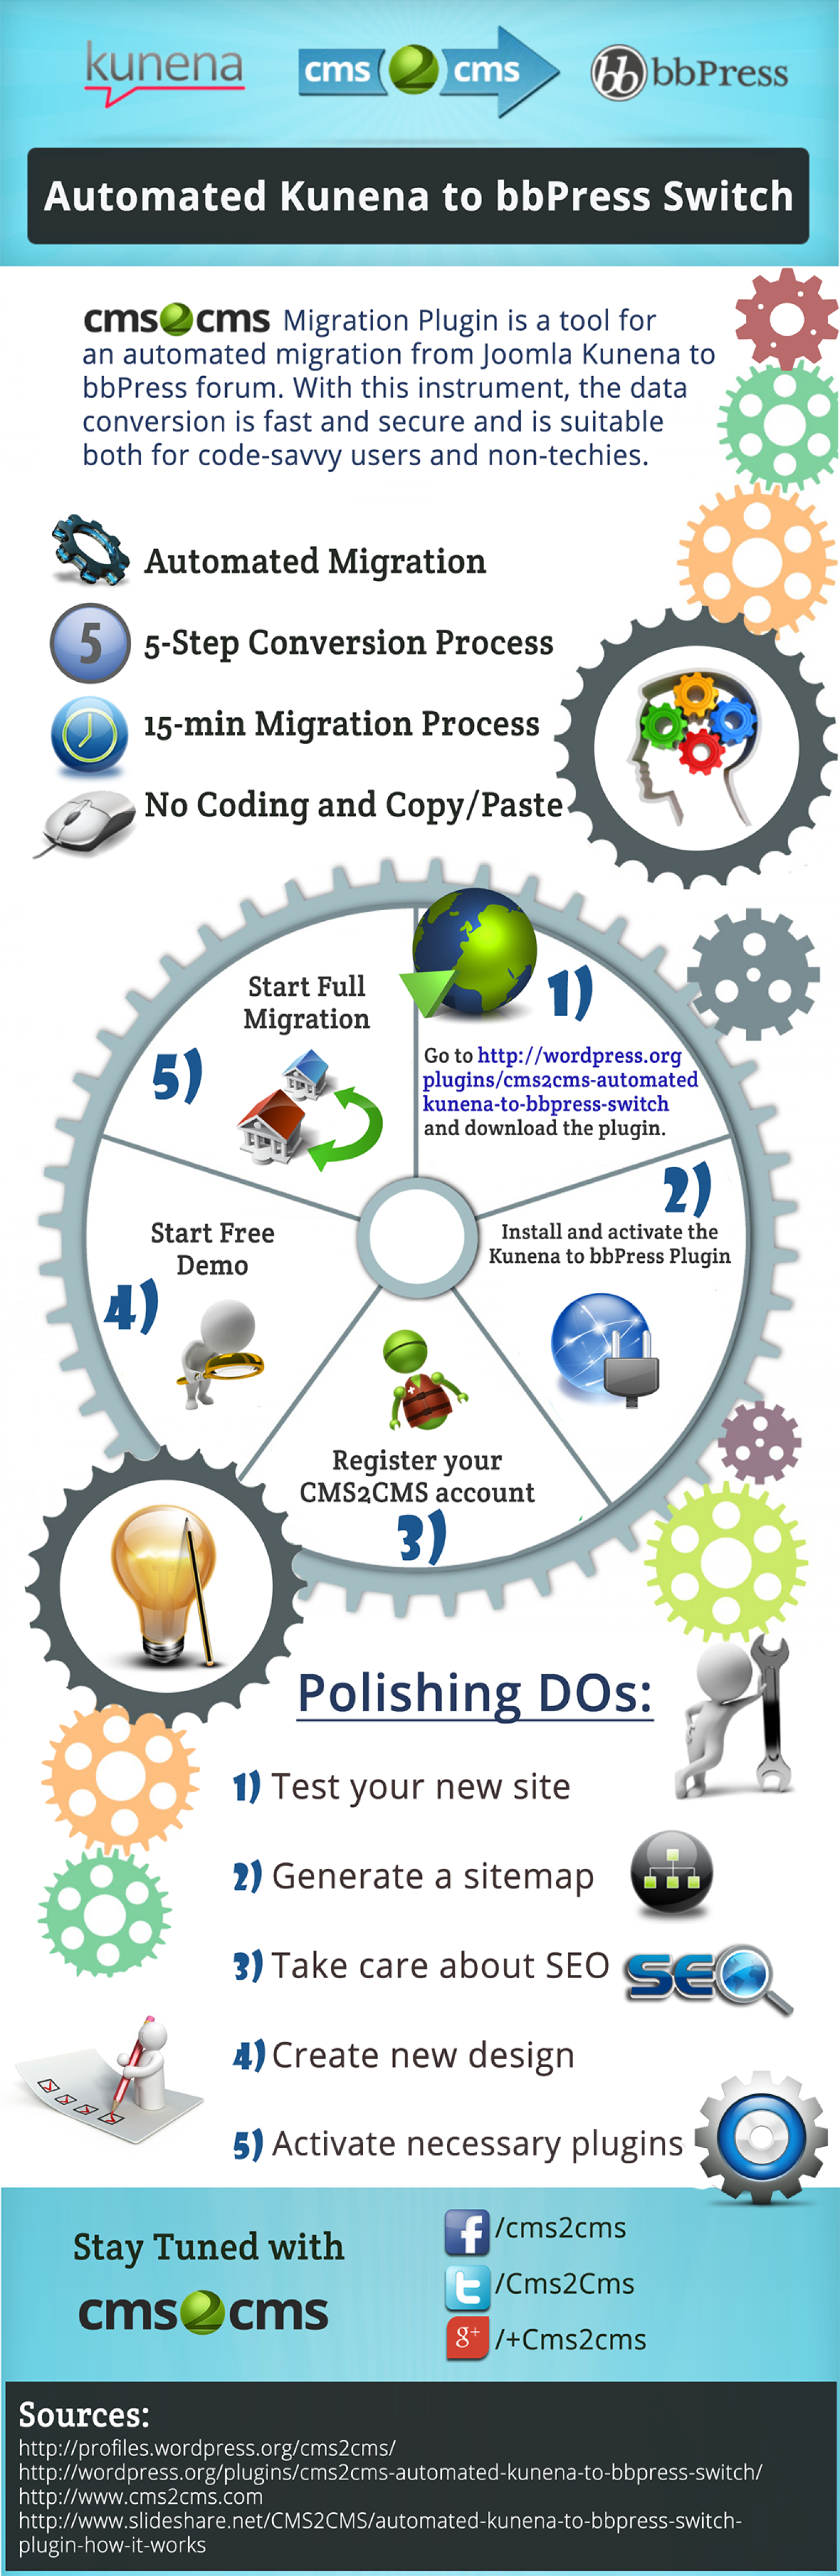 Automated Kunena to WordPress bbPress Migration Infographic